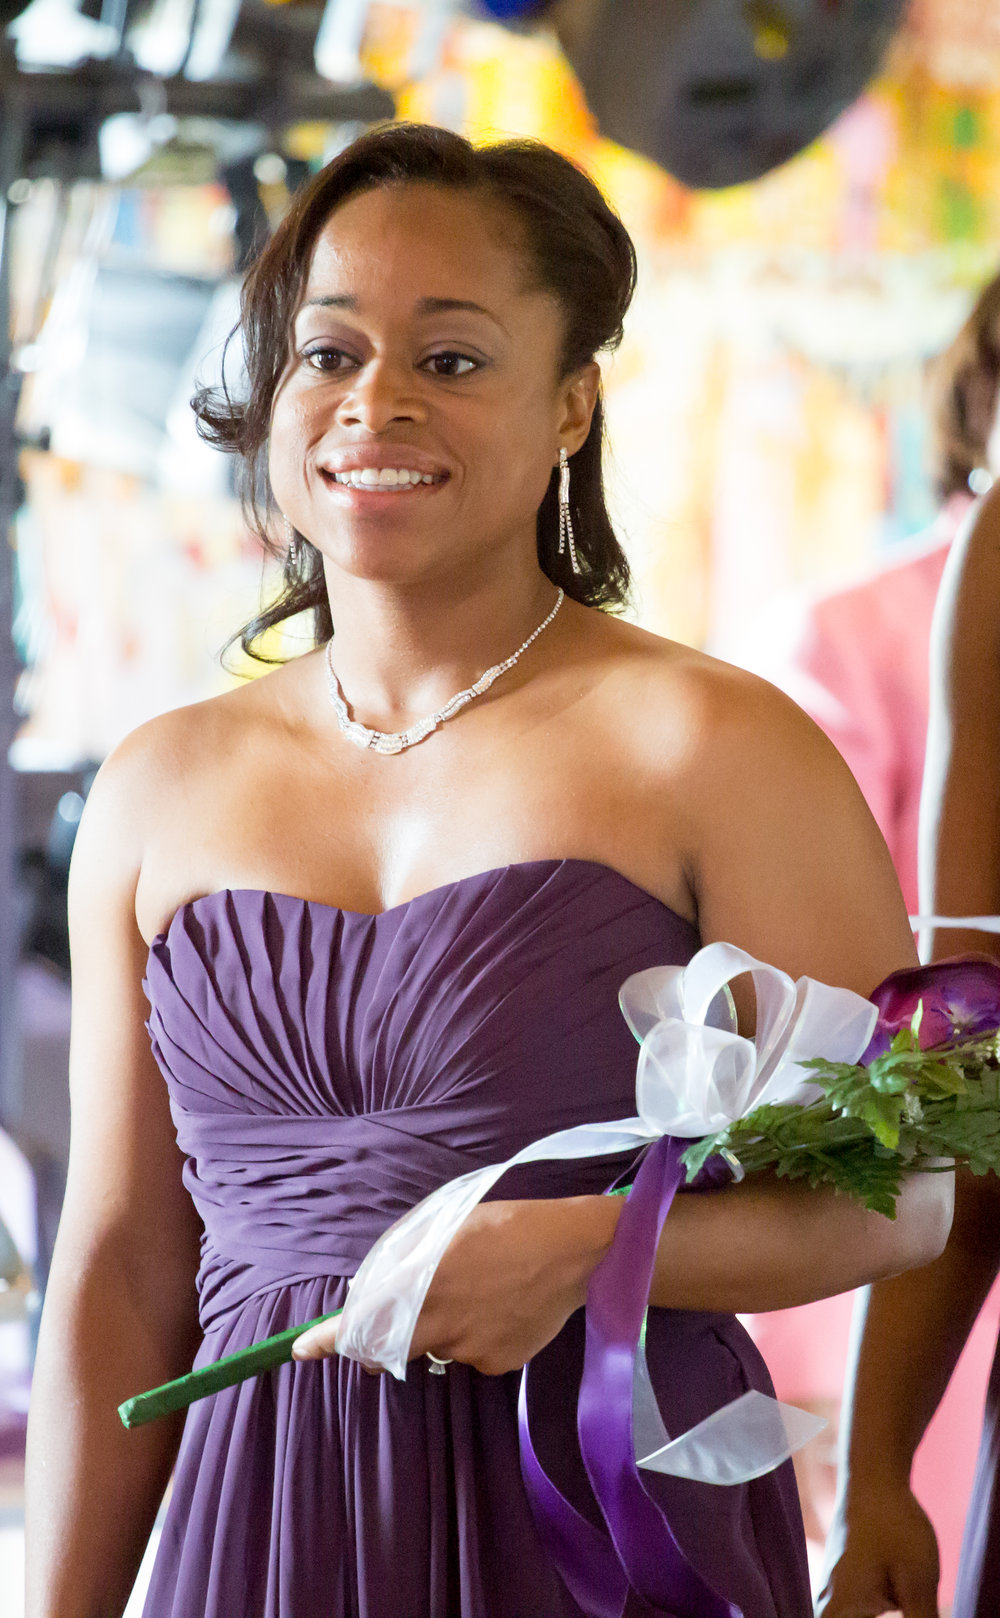 5-24-14_Errol Ebanks_The Finney Wedding_0383.jpg